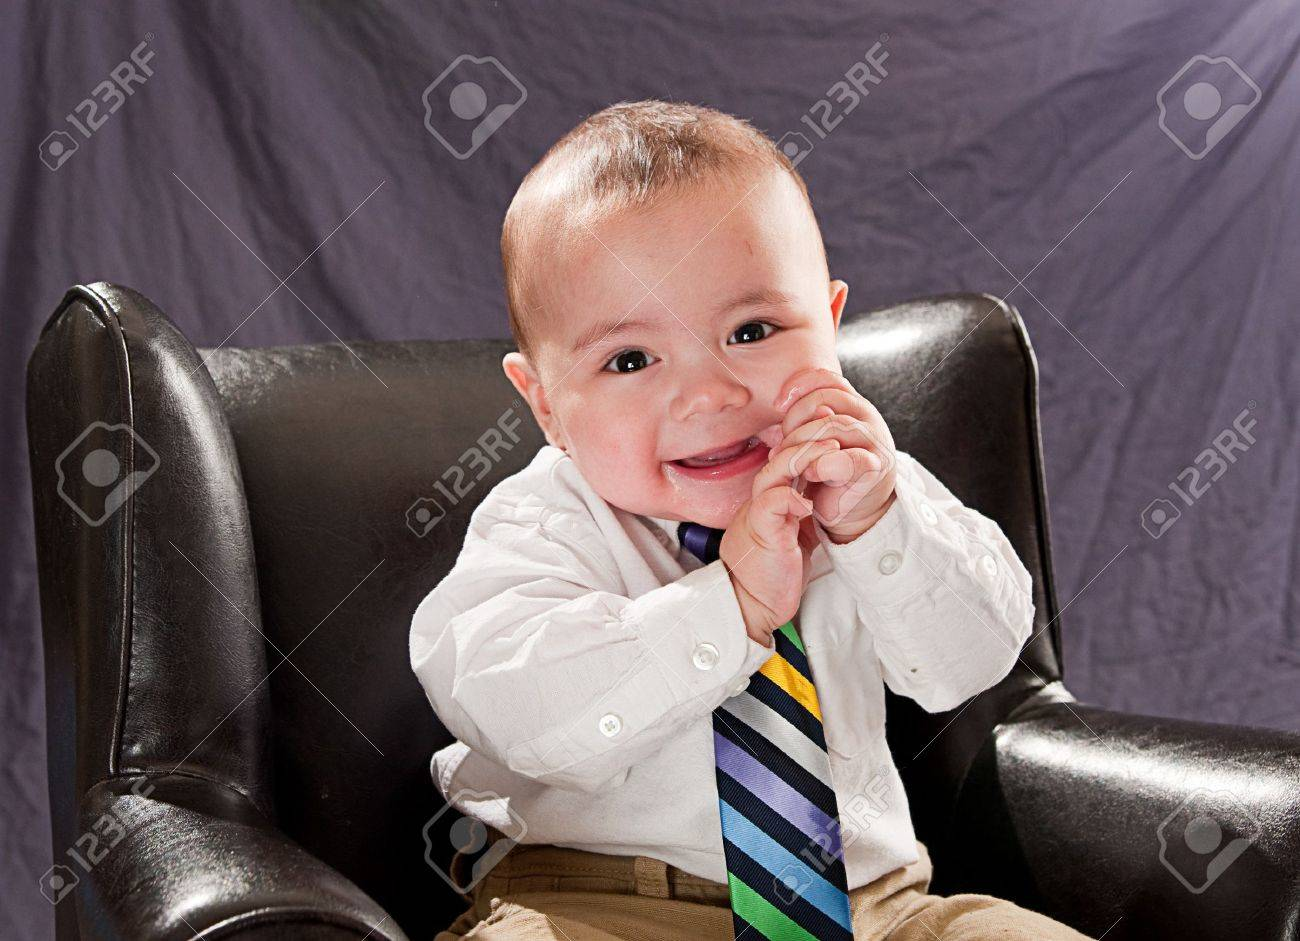 Baby wearing a colorful neck tie smiling and laughing sitting in a leather chair Stock Photo - 7479520